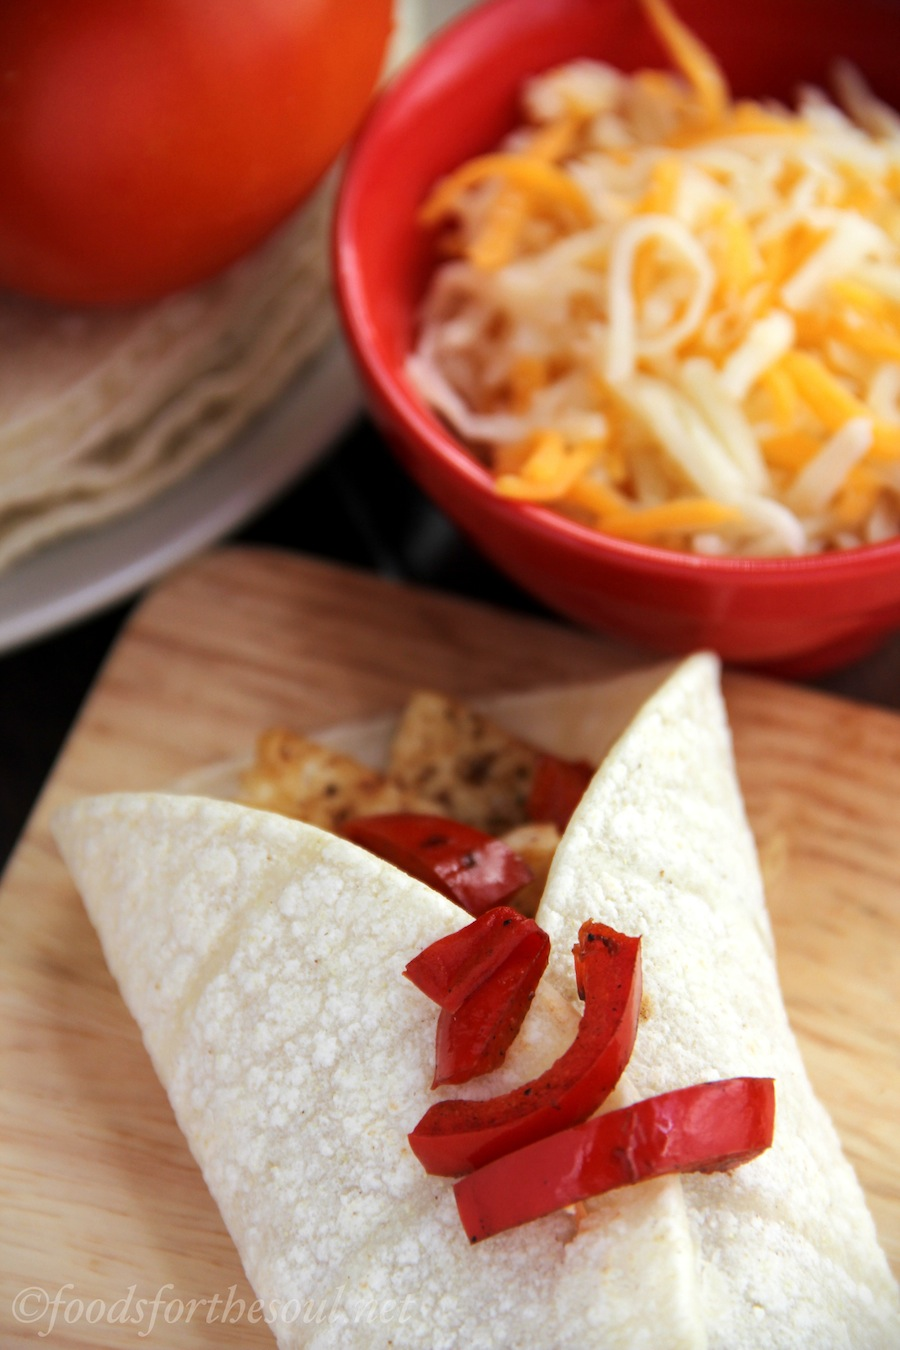 gluten free & vegan chili-spiced tofu tacos with red bell peppers